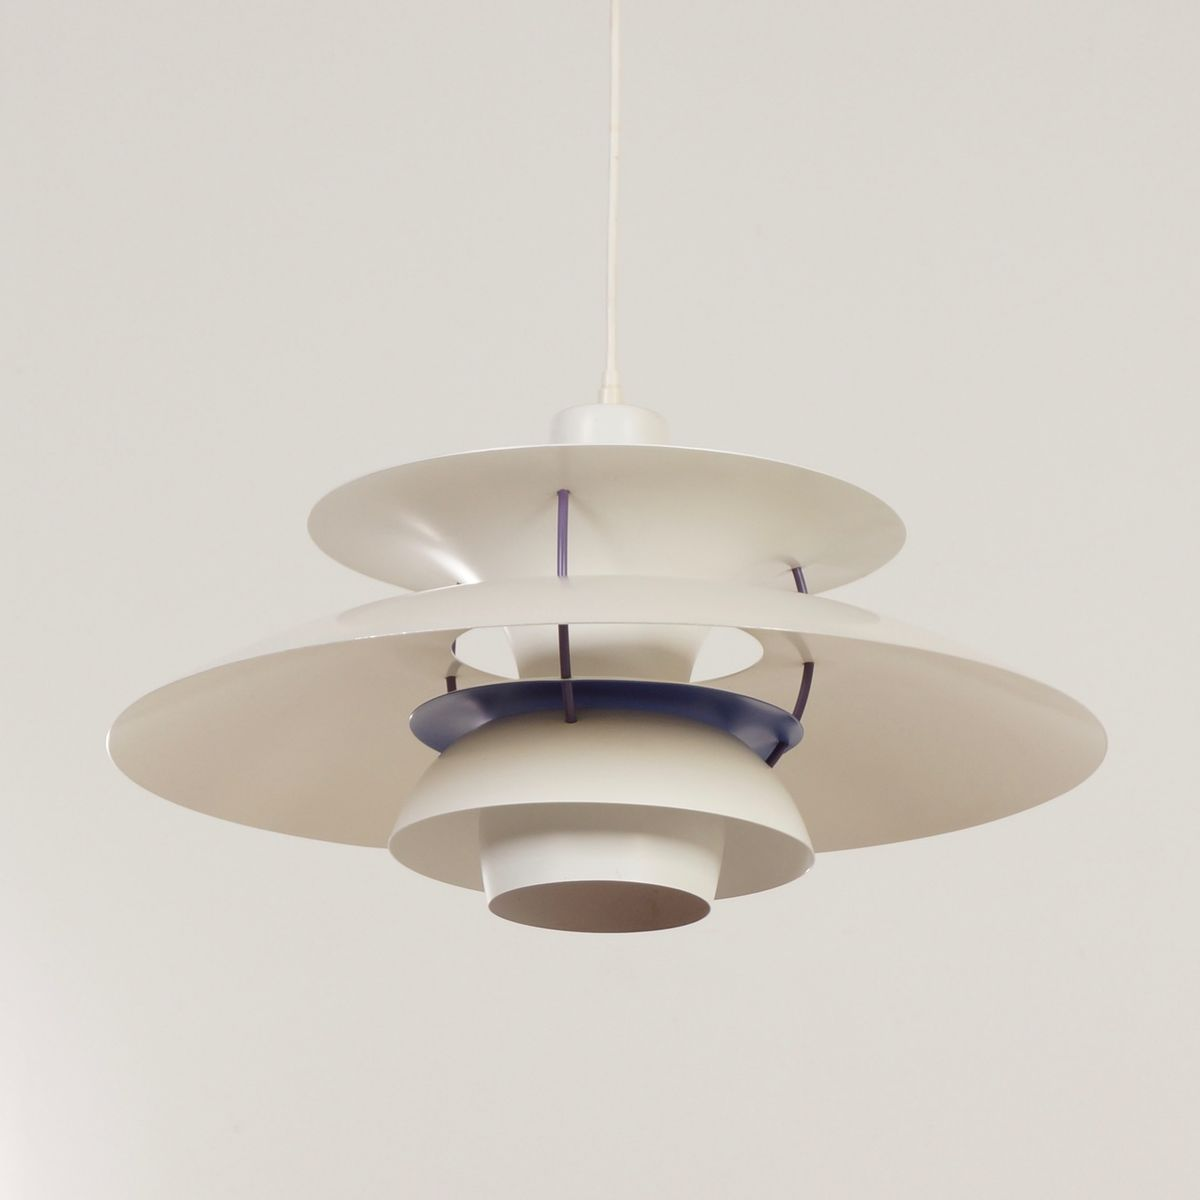 Vintage PH 5 Pendant Lamp In White By Poul Henningsen For